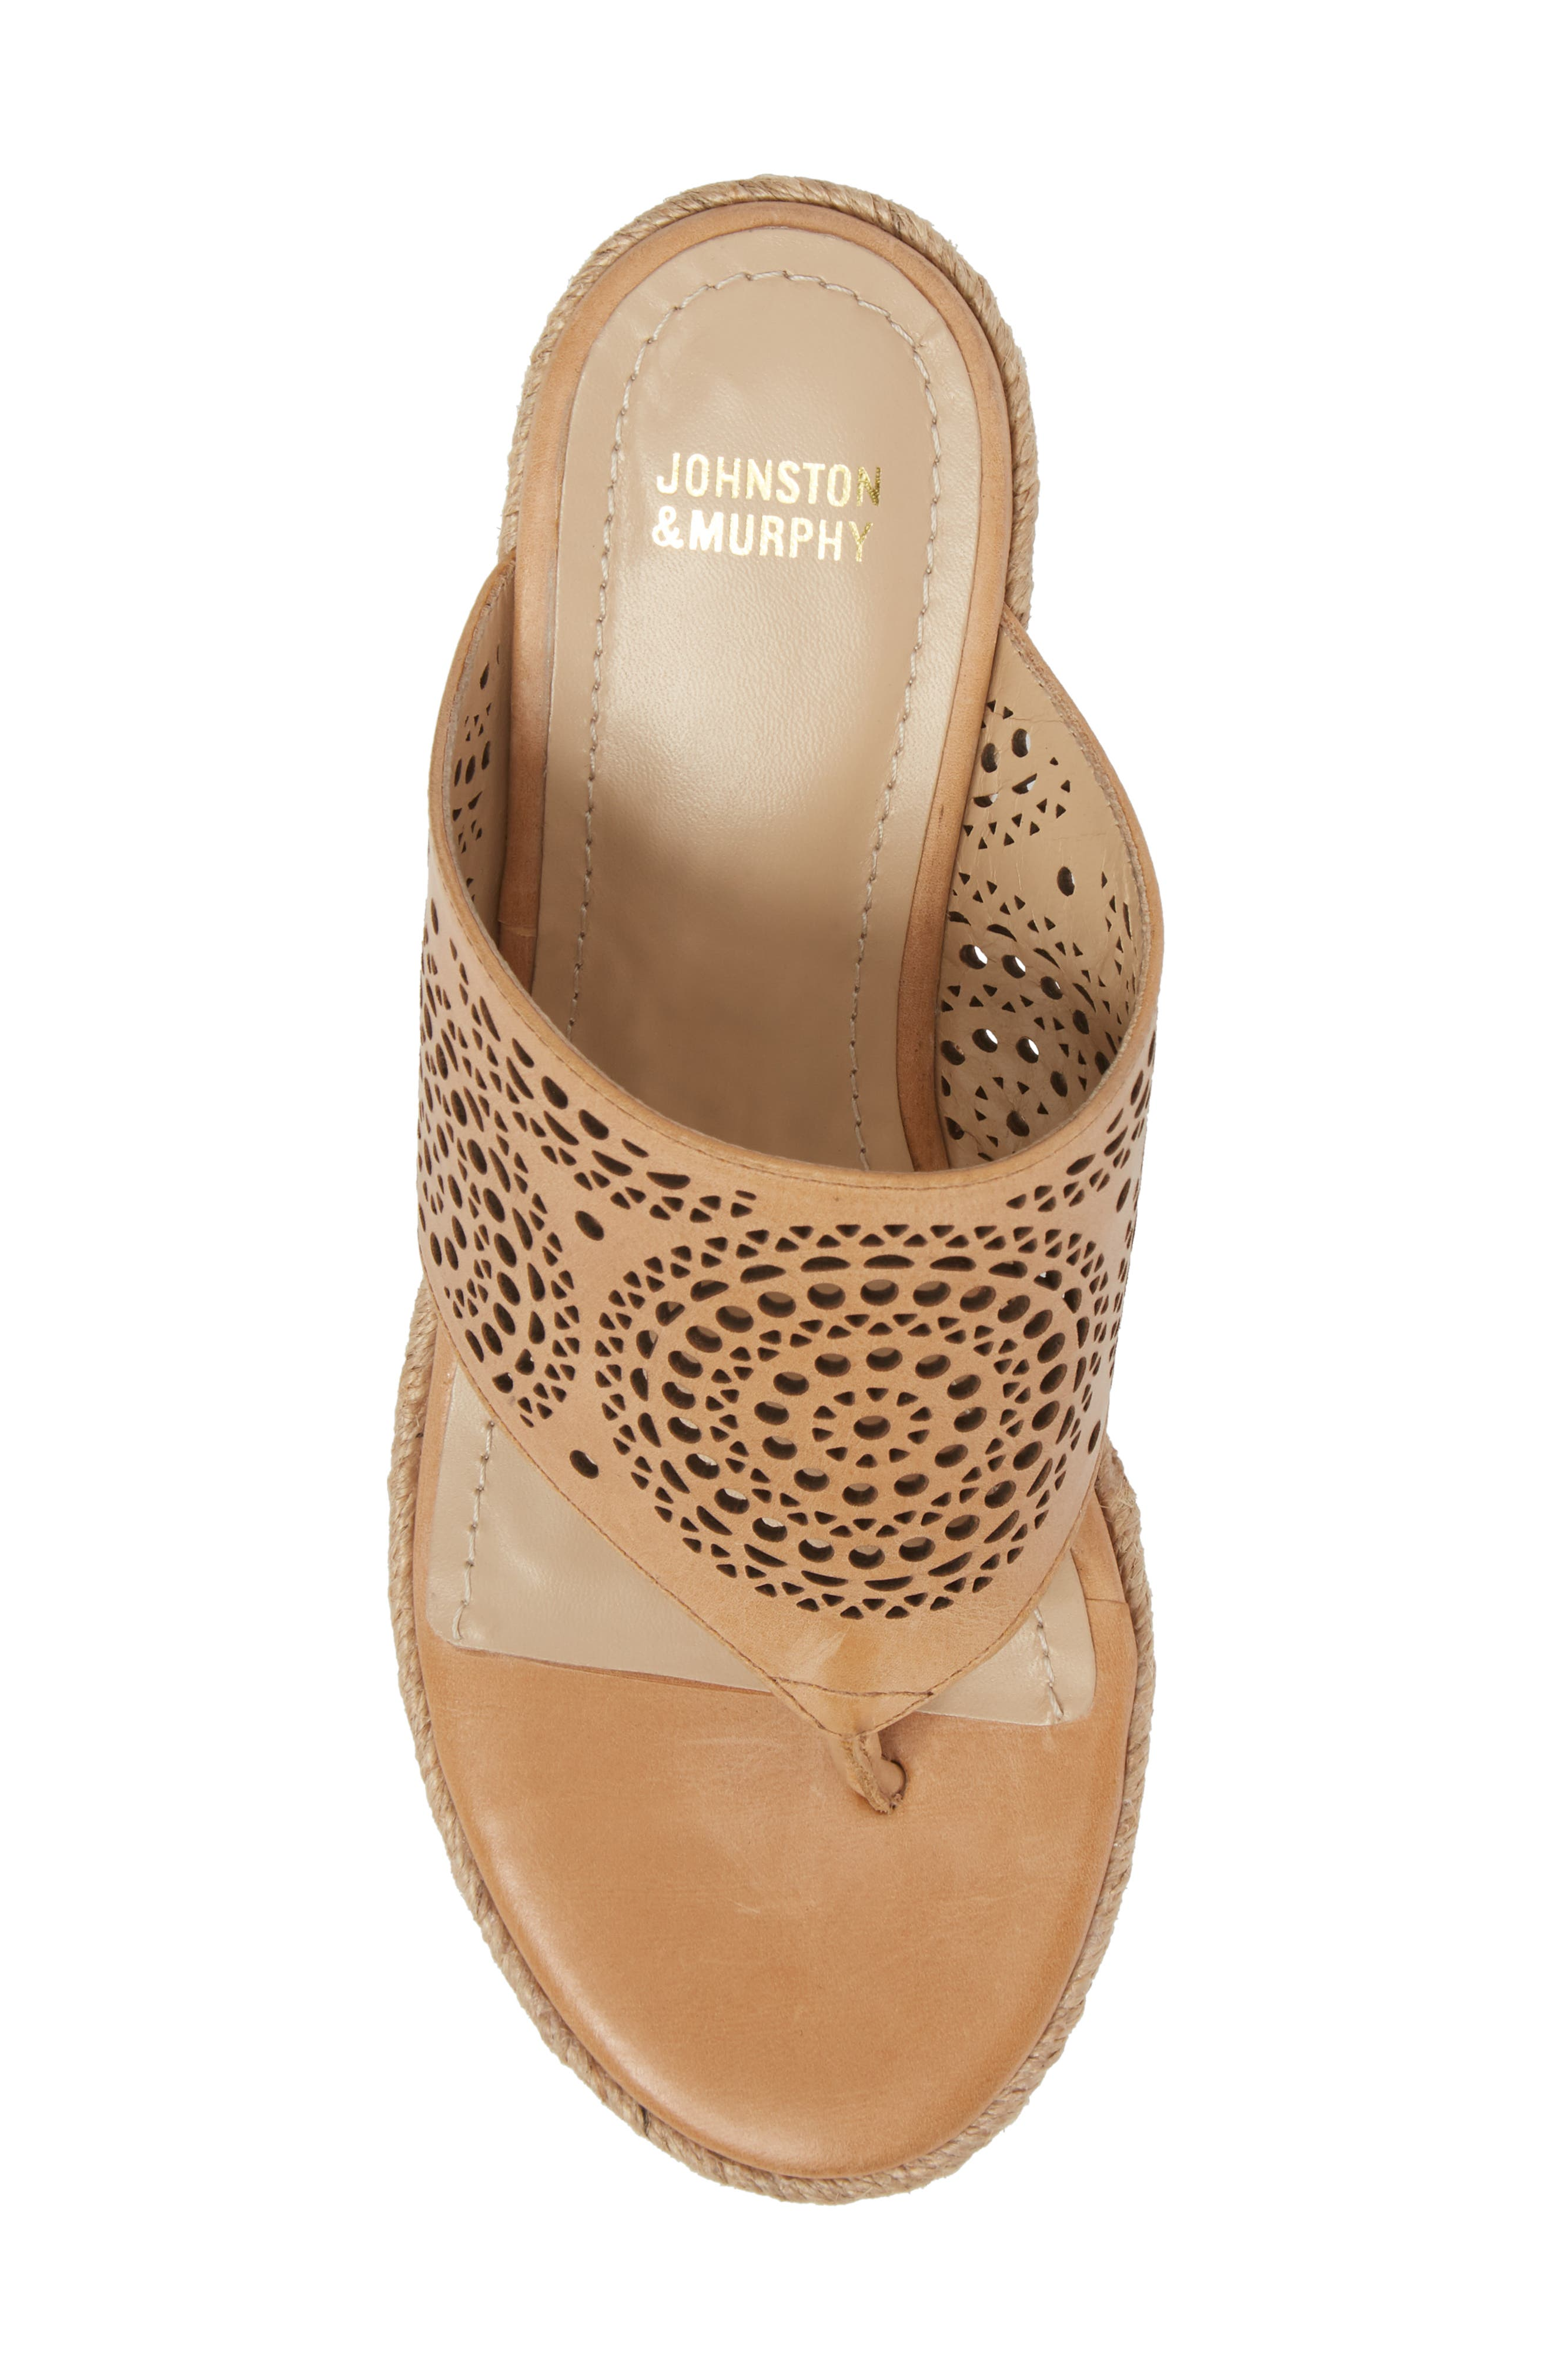 Gina Wedge Sandal,                             Alternate thumbnail 5, color,                             Tan Leather